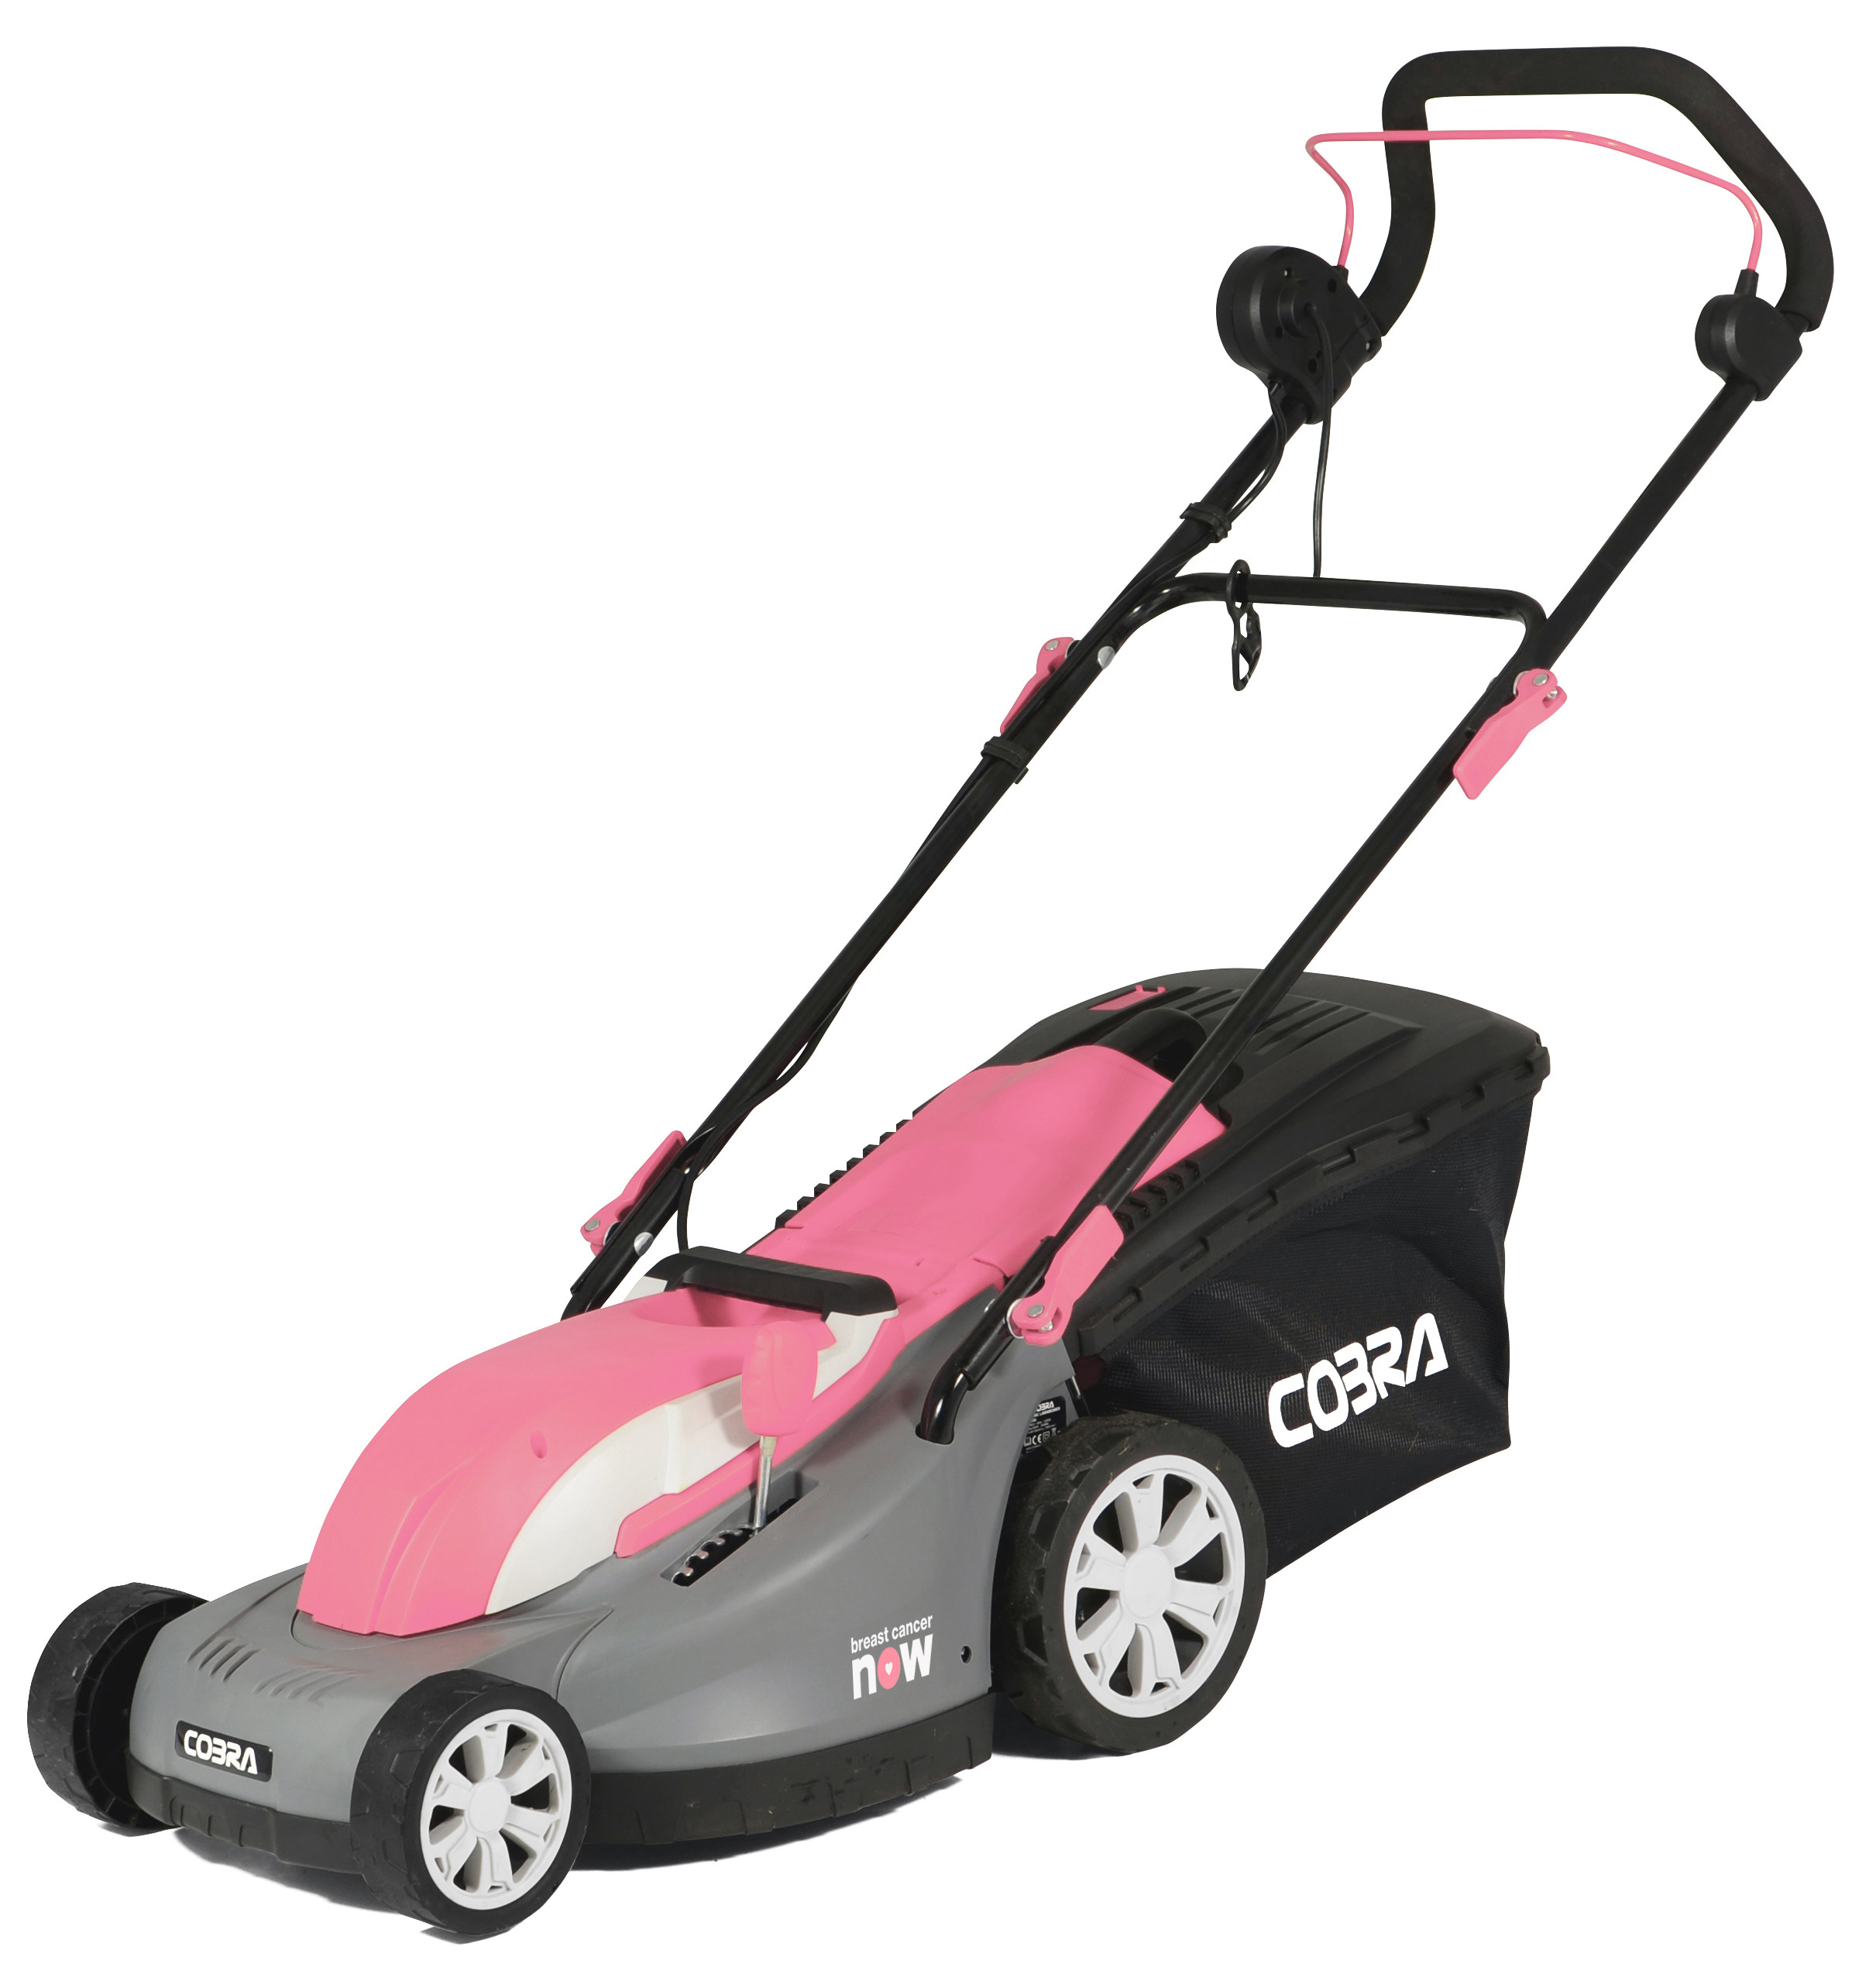 Cobra GTRM38P 'Limited Edition' Electric Lawnmower